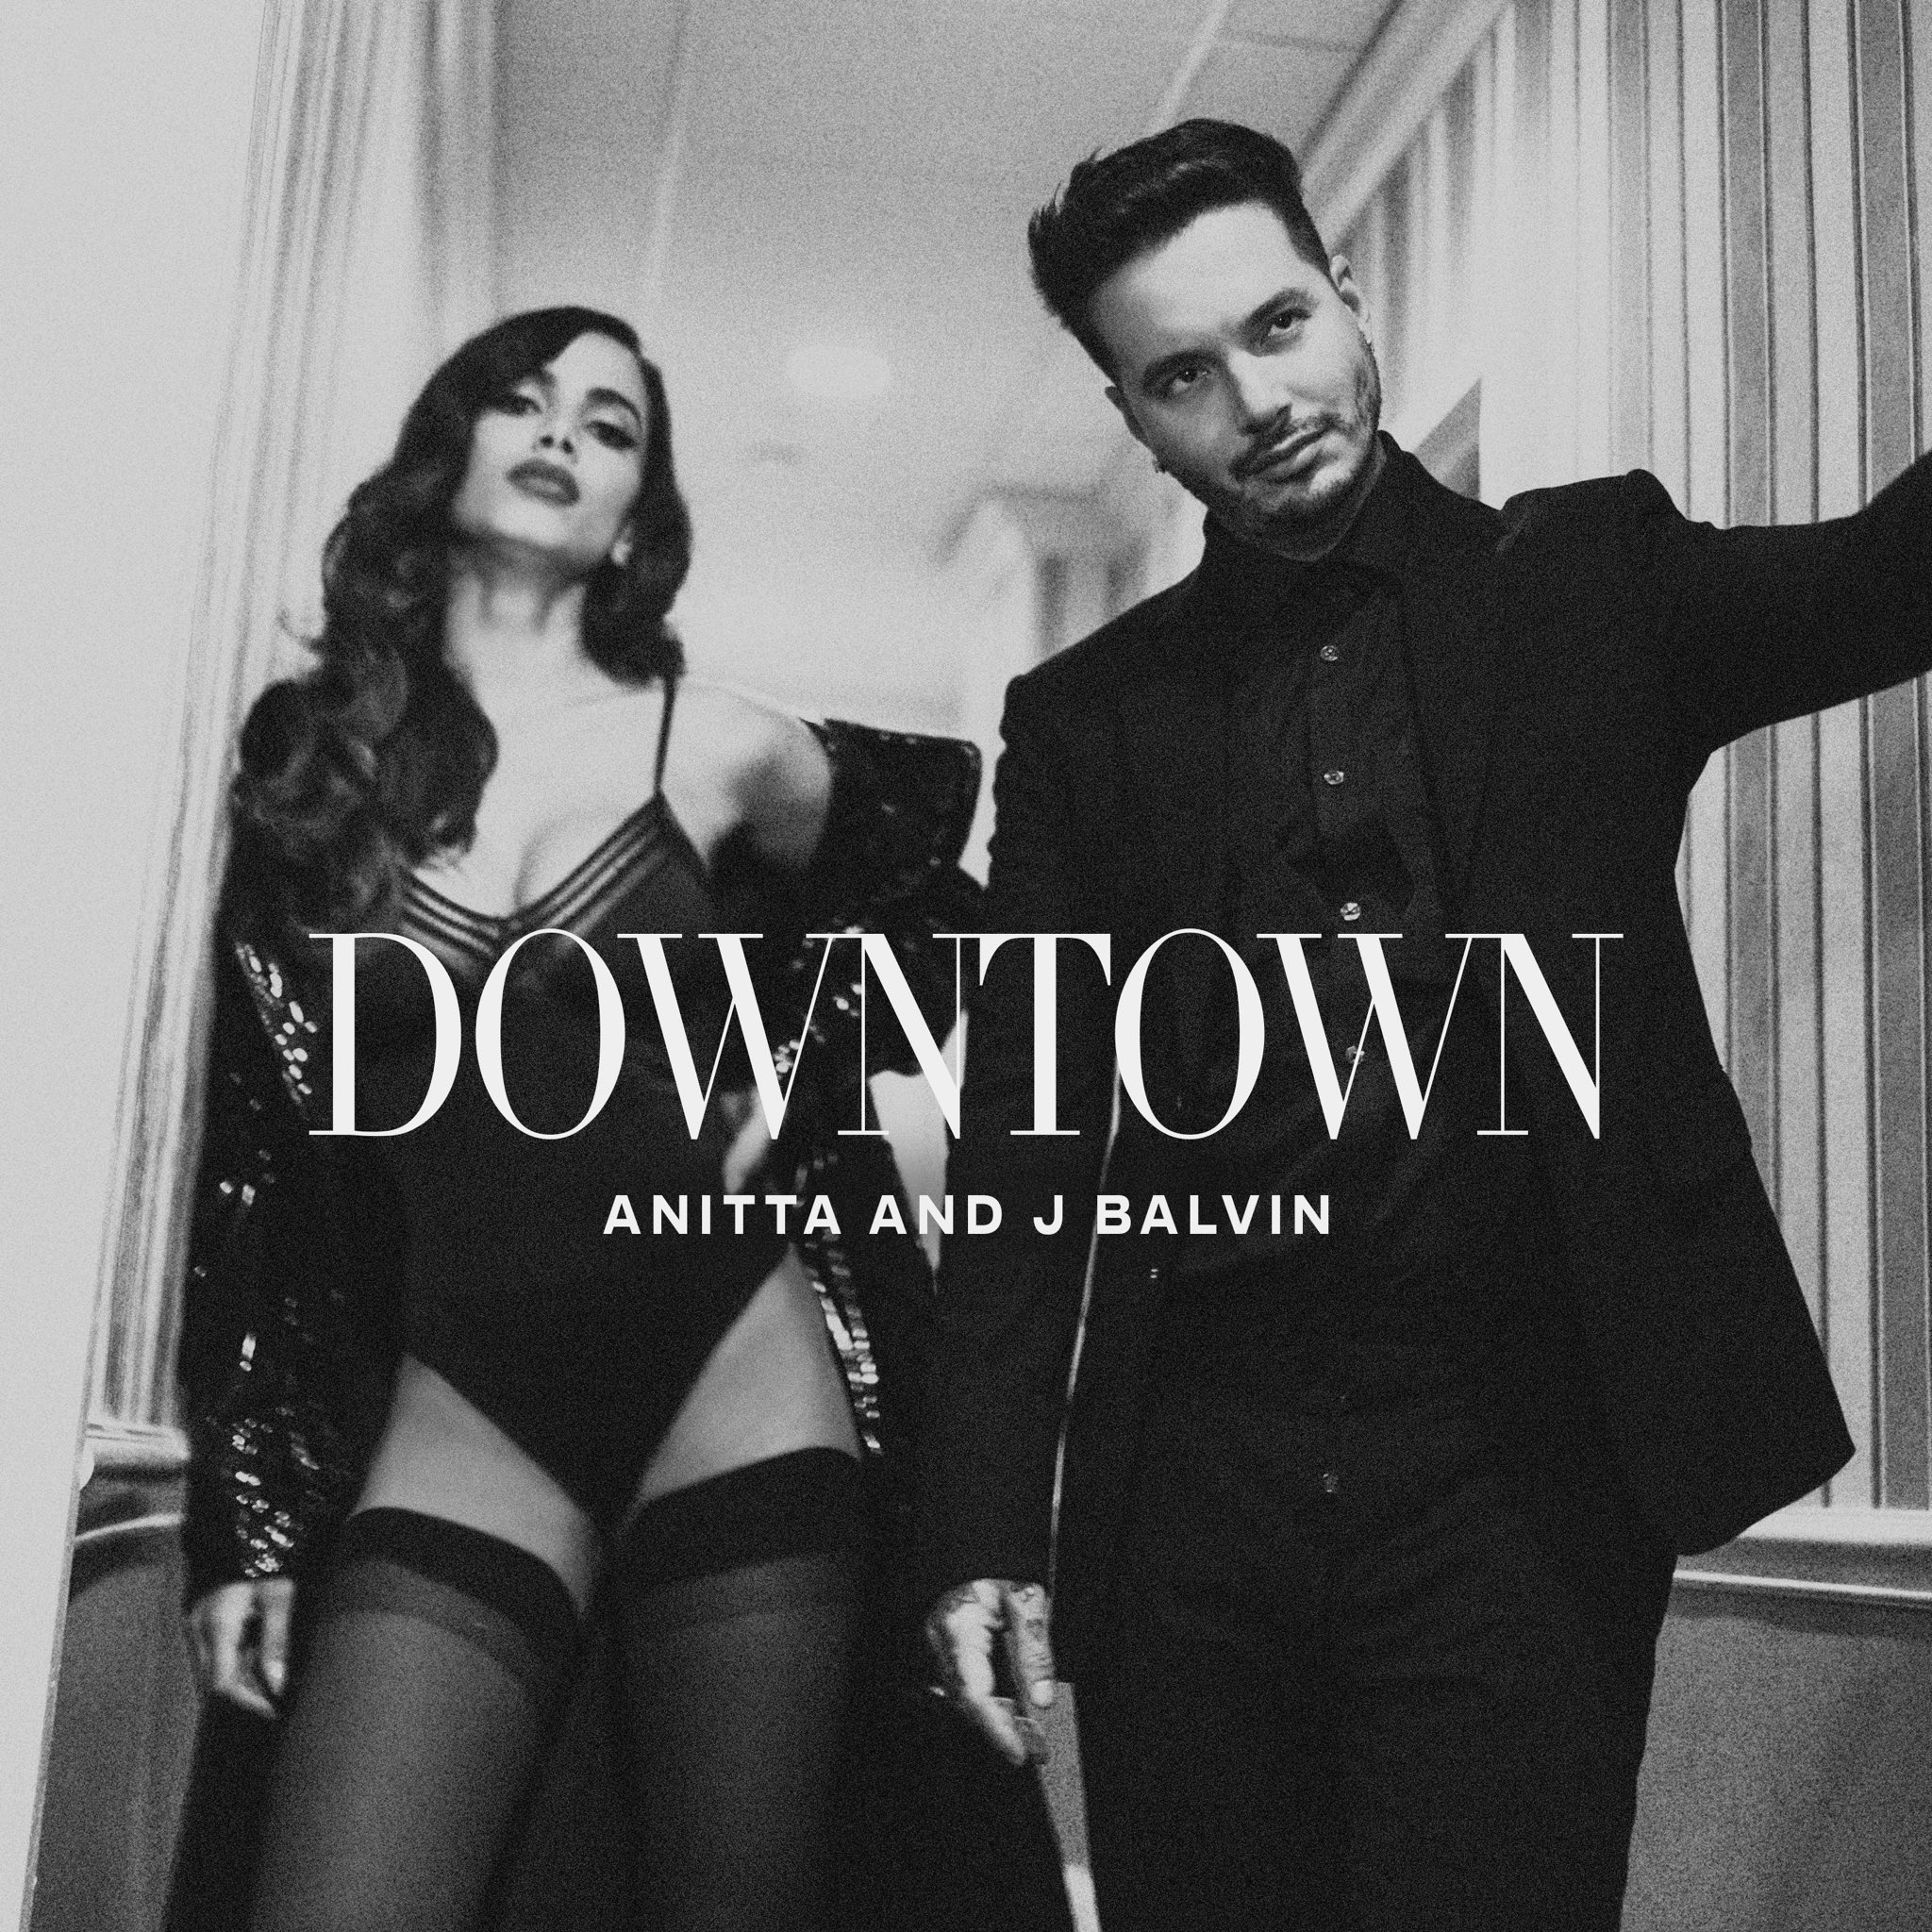 """Downtown"" by @Anitta & @JBALVIN is available on all streaming platforms! Listen here ▶️ https://t.co/oyb7xq2MTa https://t.co/LKd8Vzm21T"